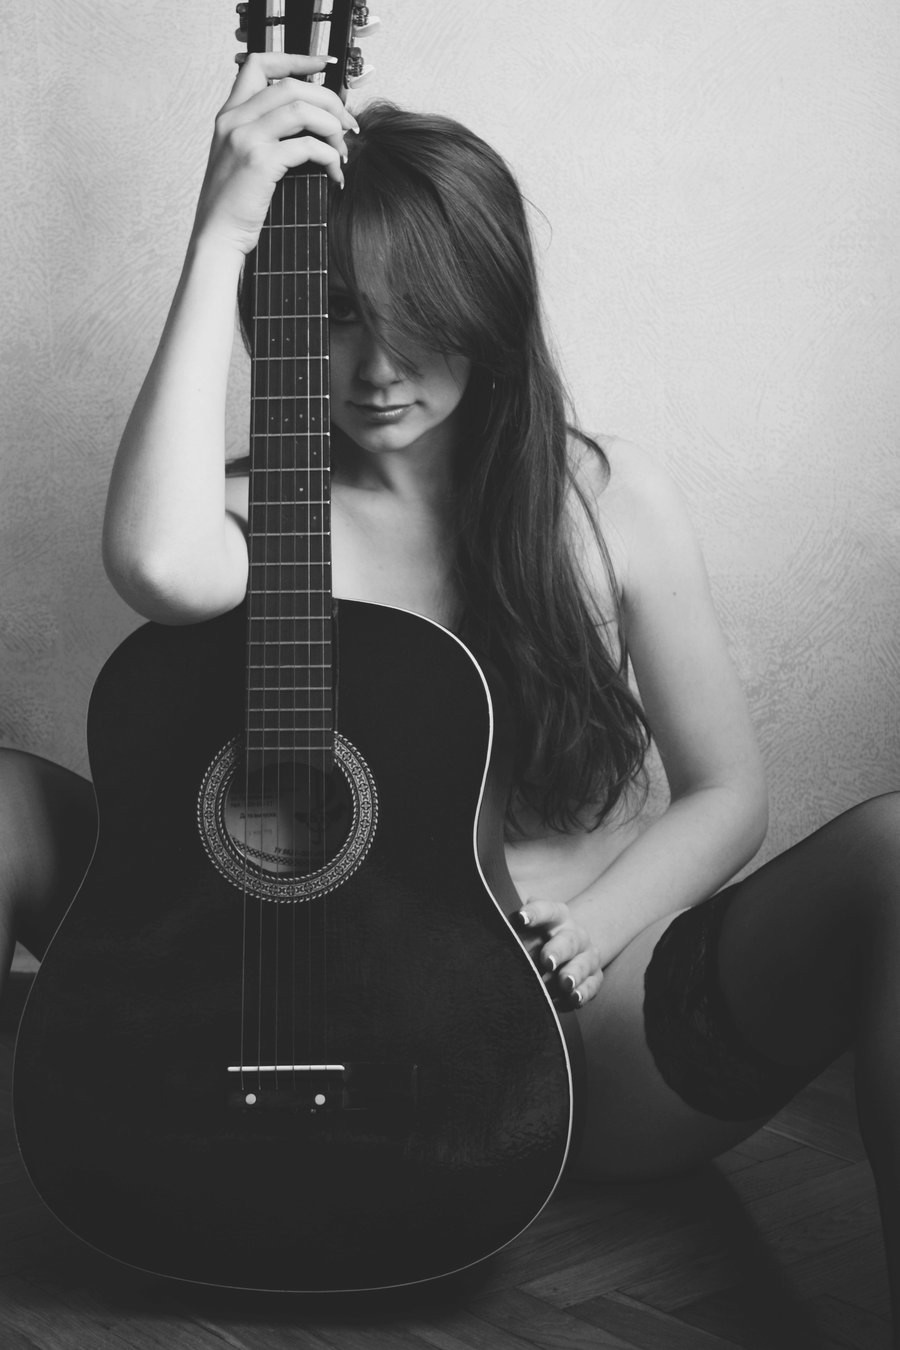 Stylish girl with guitar images